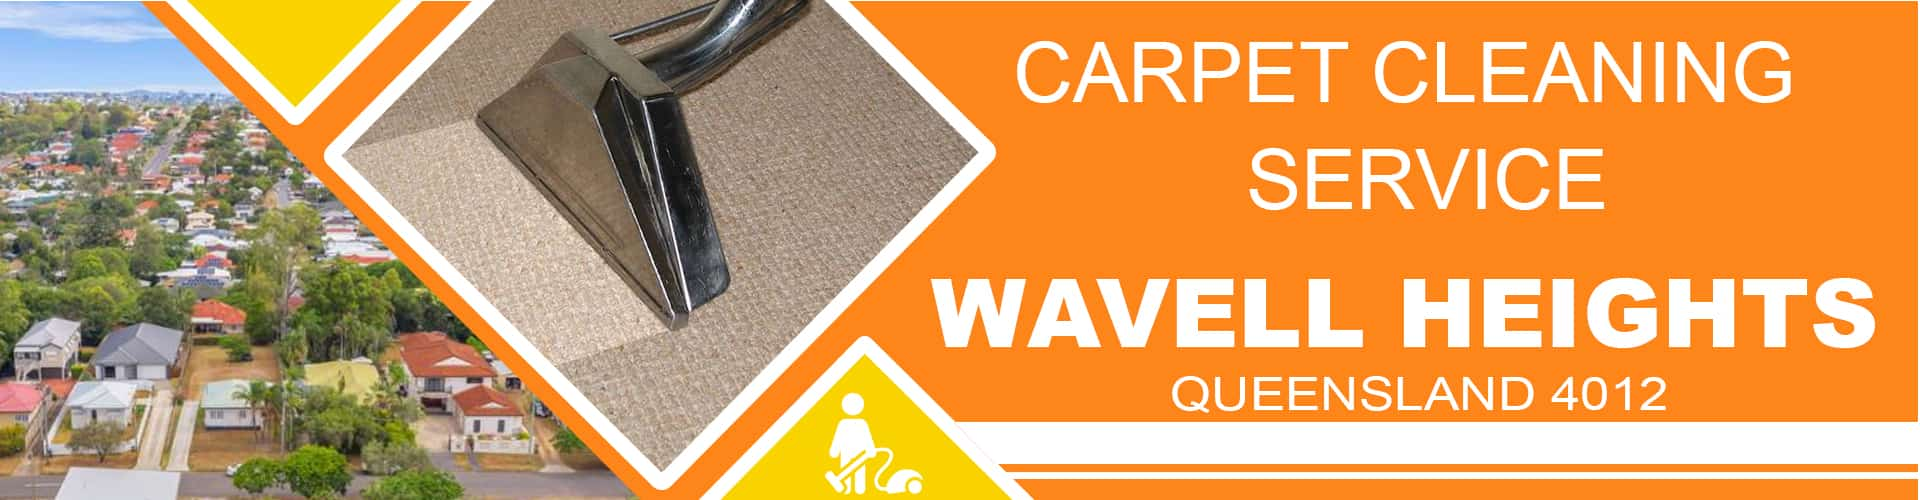 Carpet Cleaning Wavell Heights